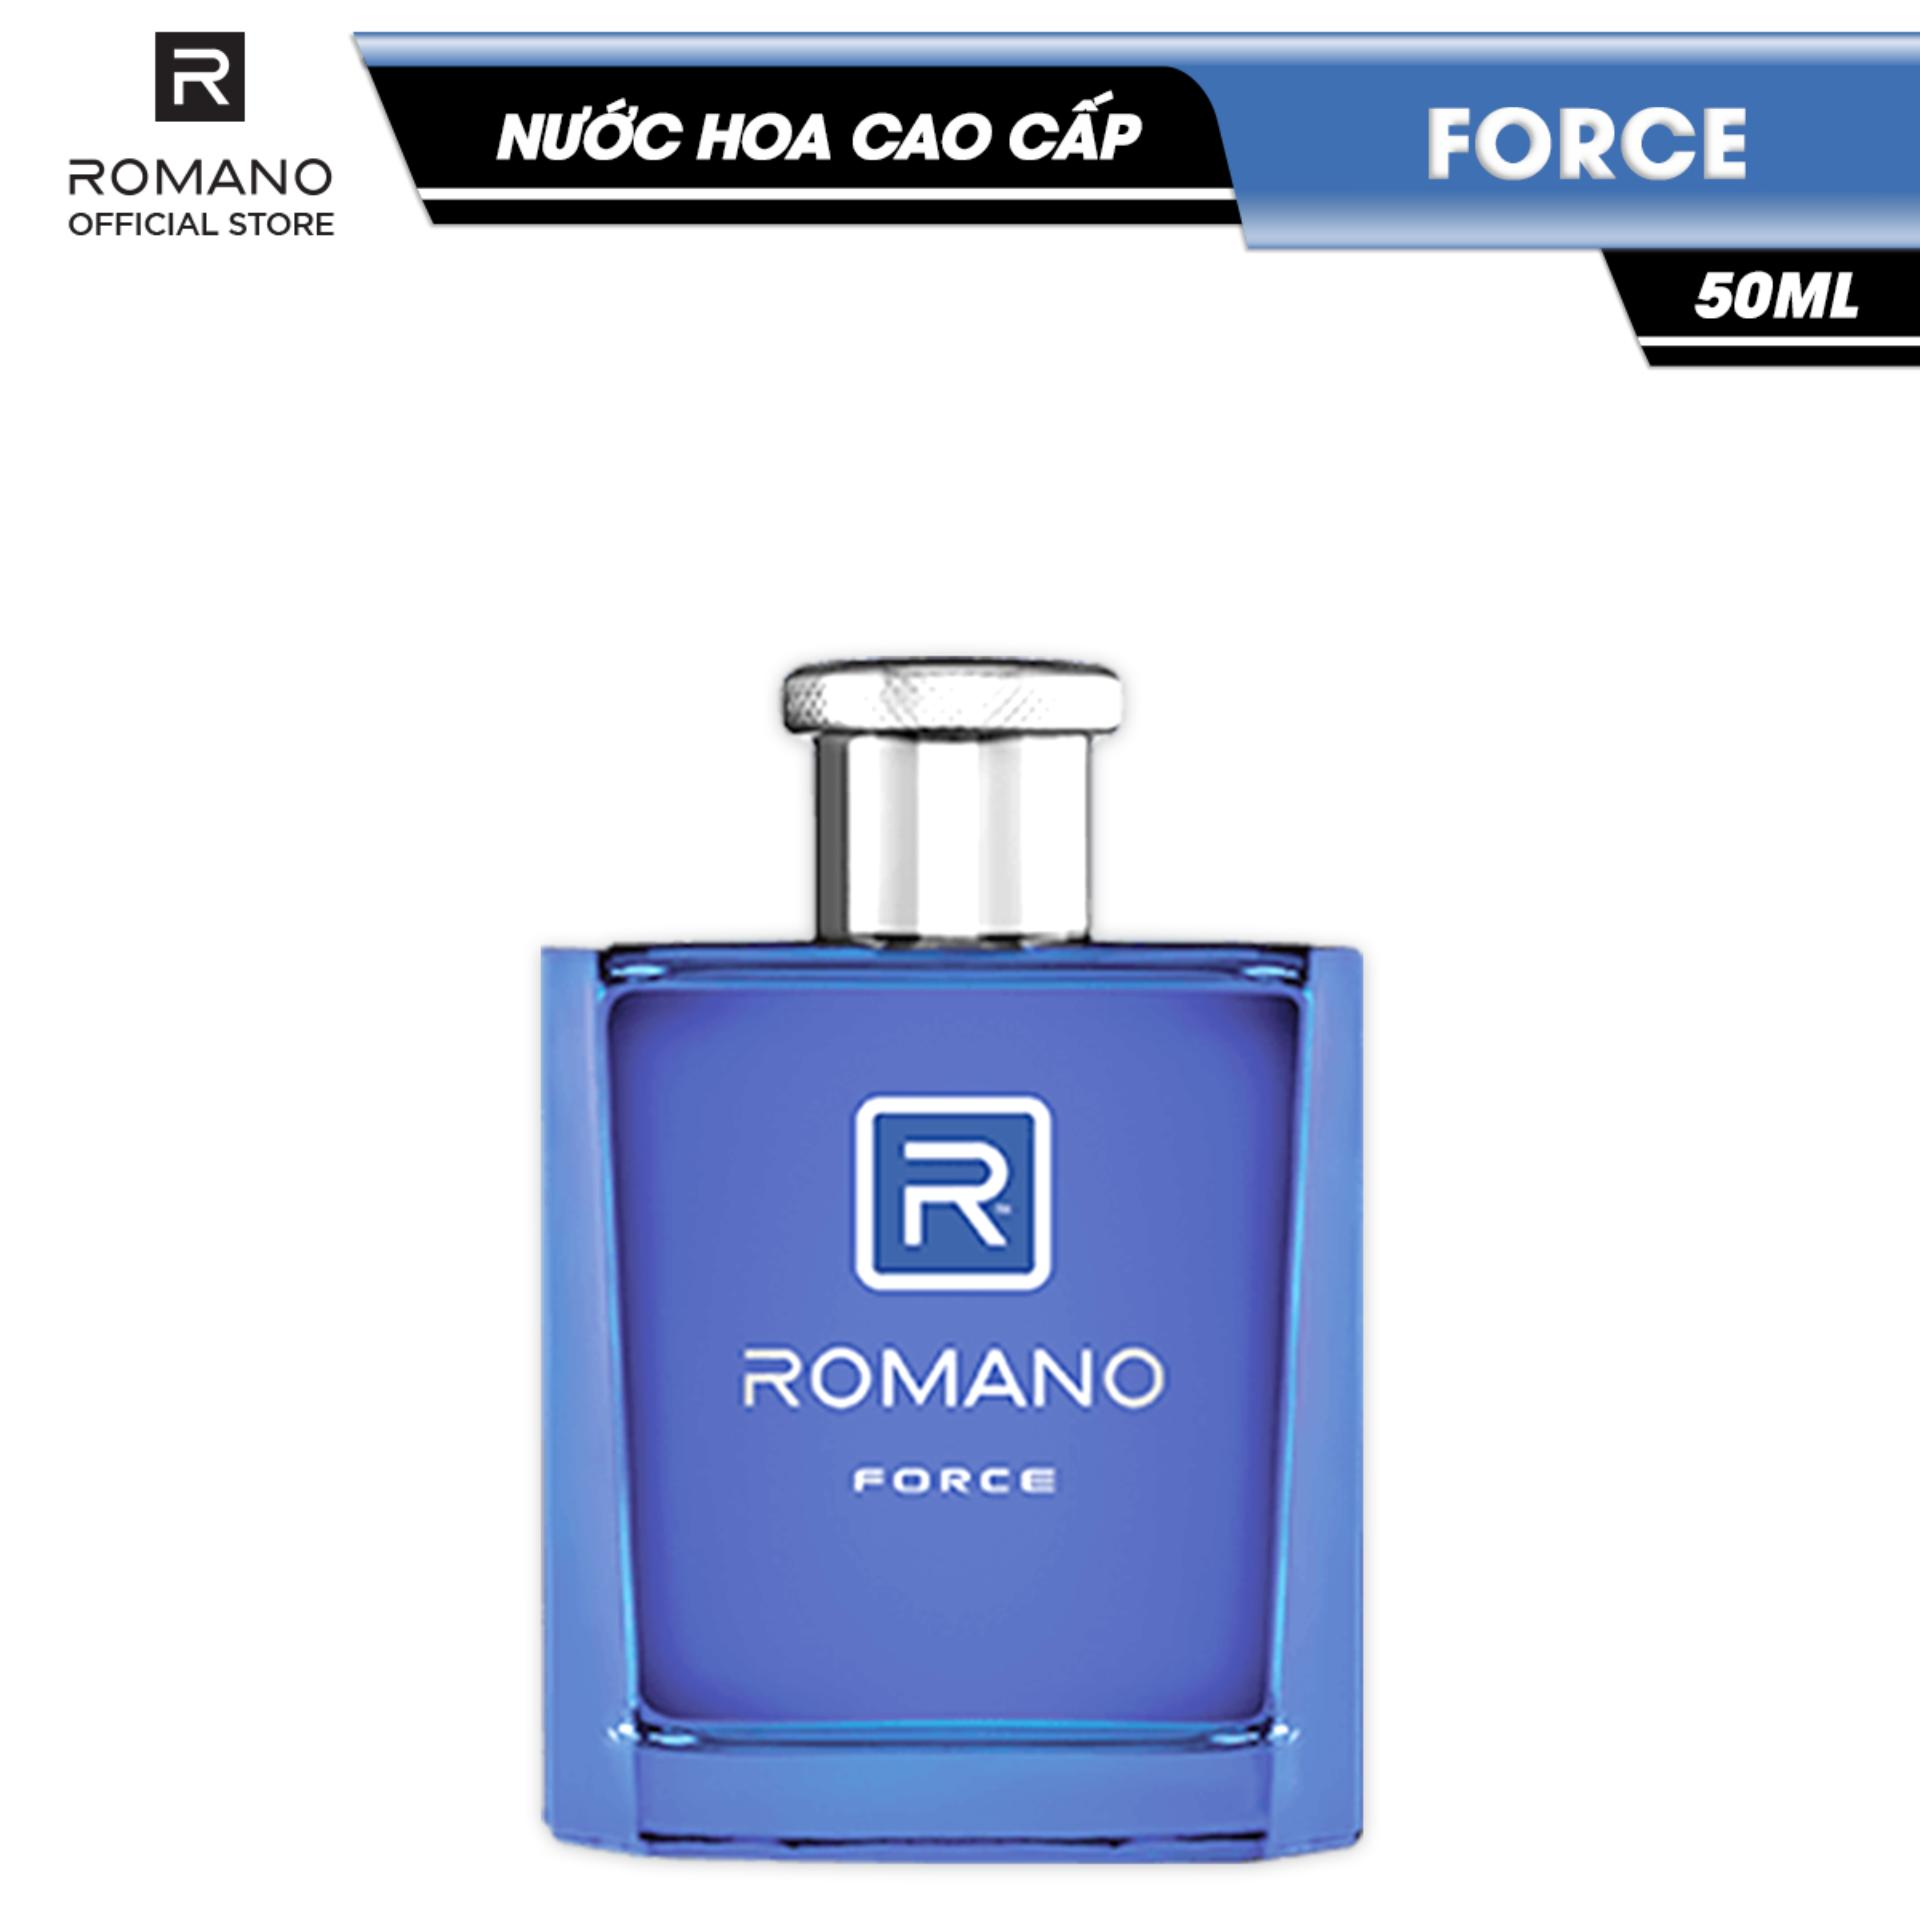 Nước hoa Romano Force 50ml